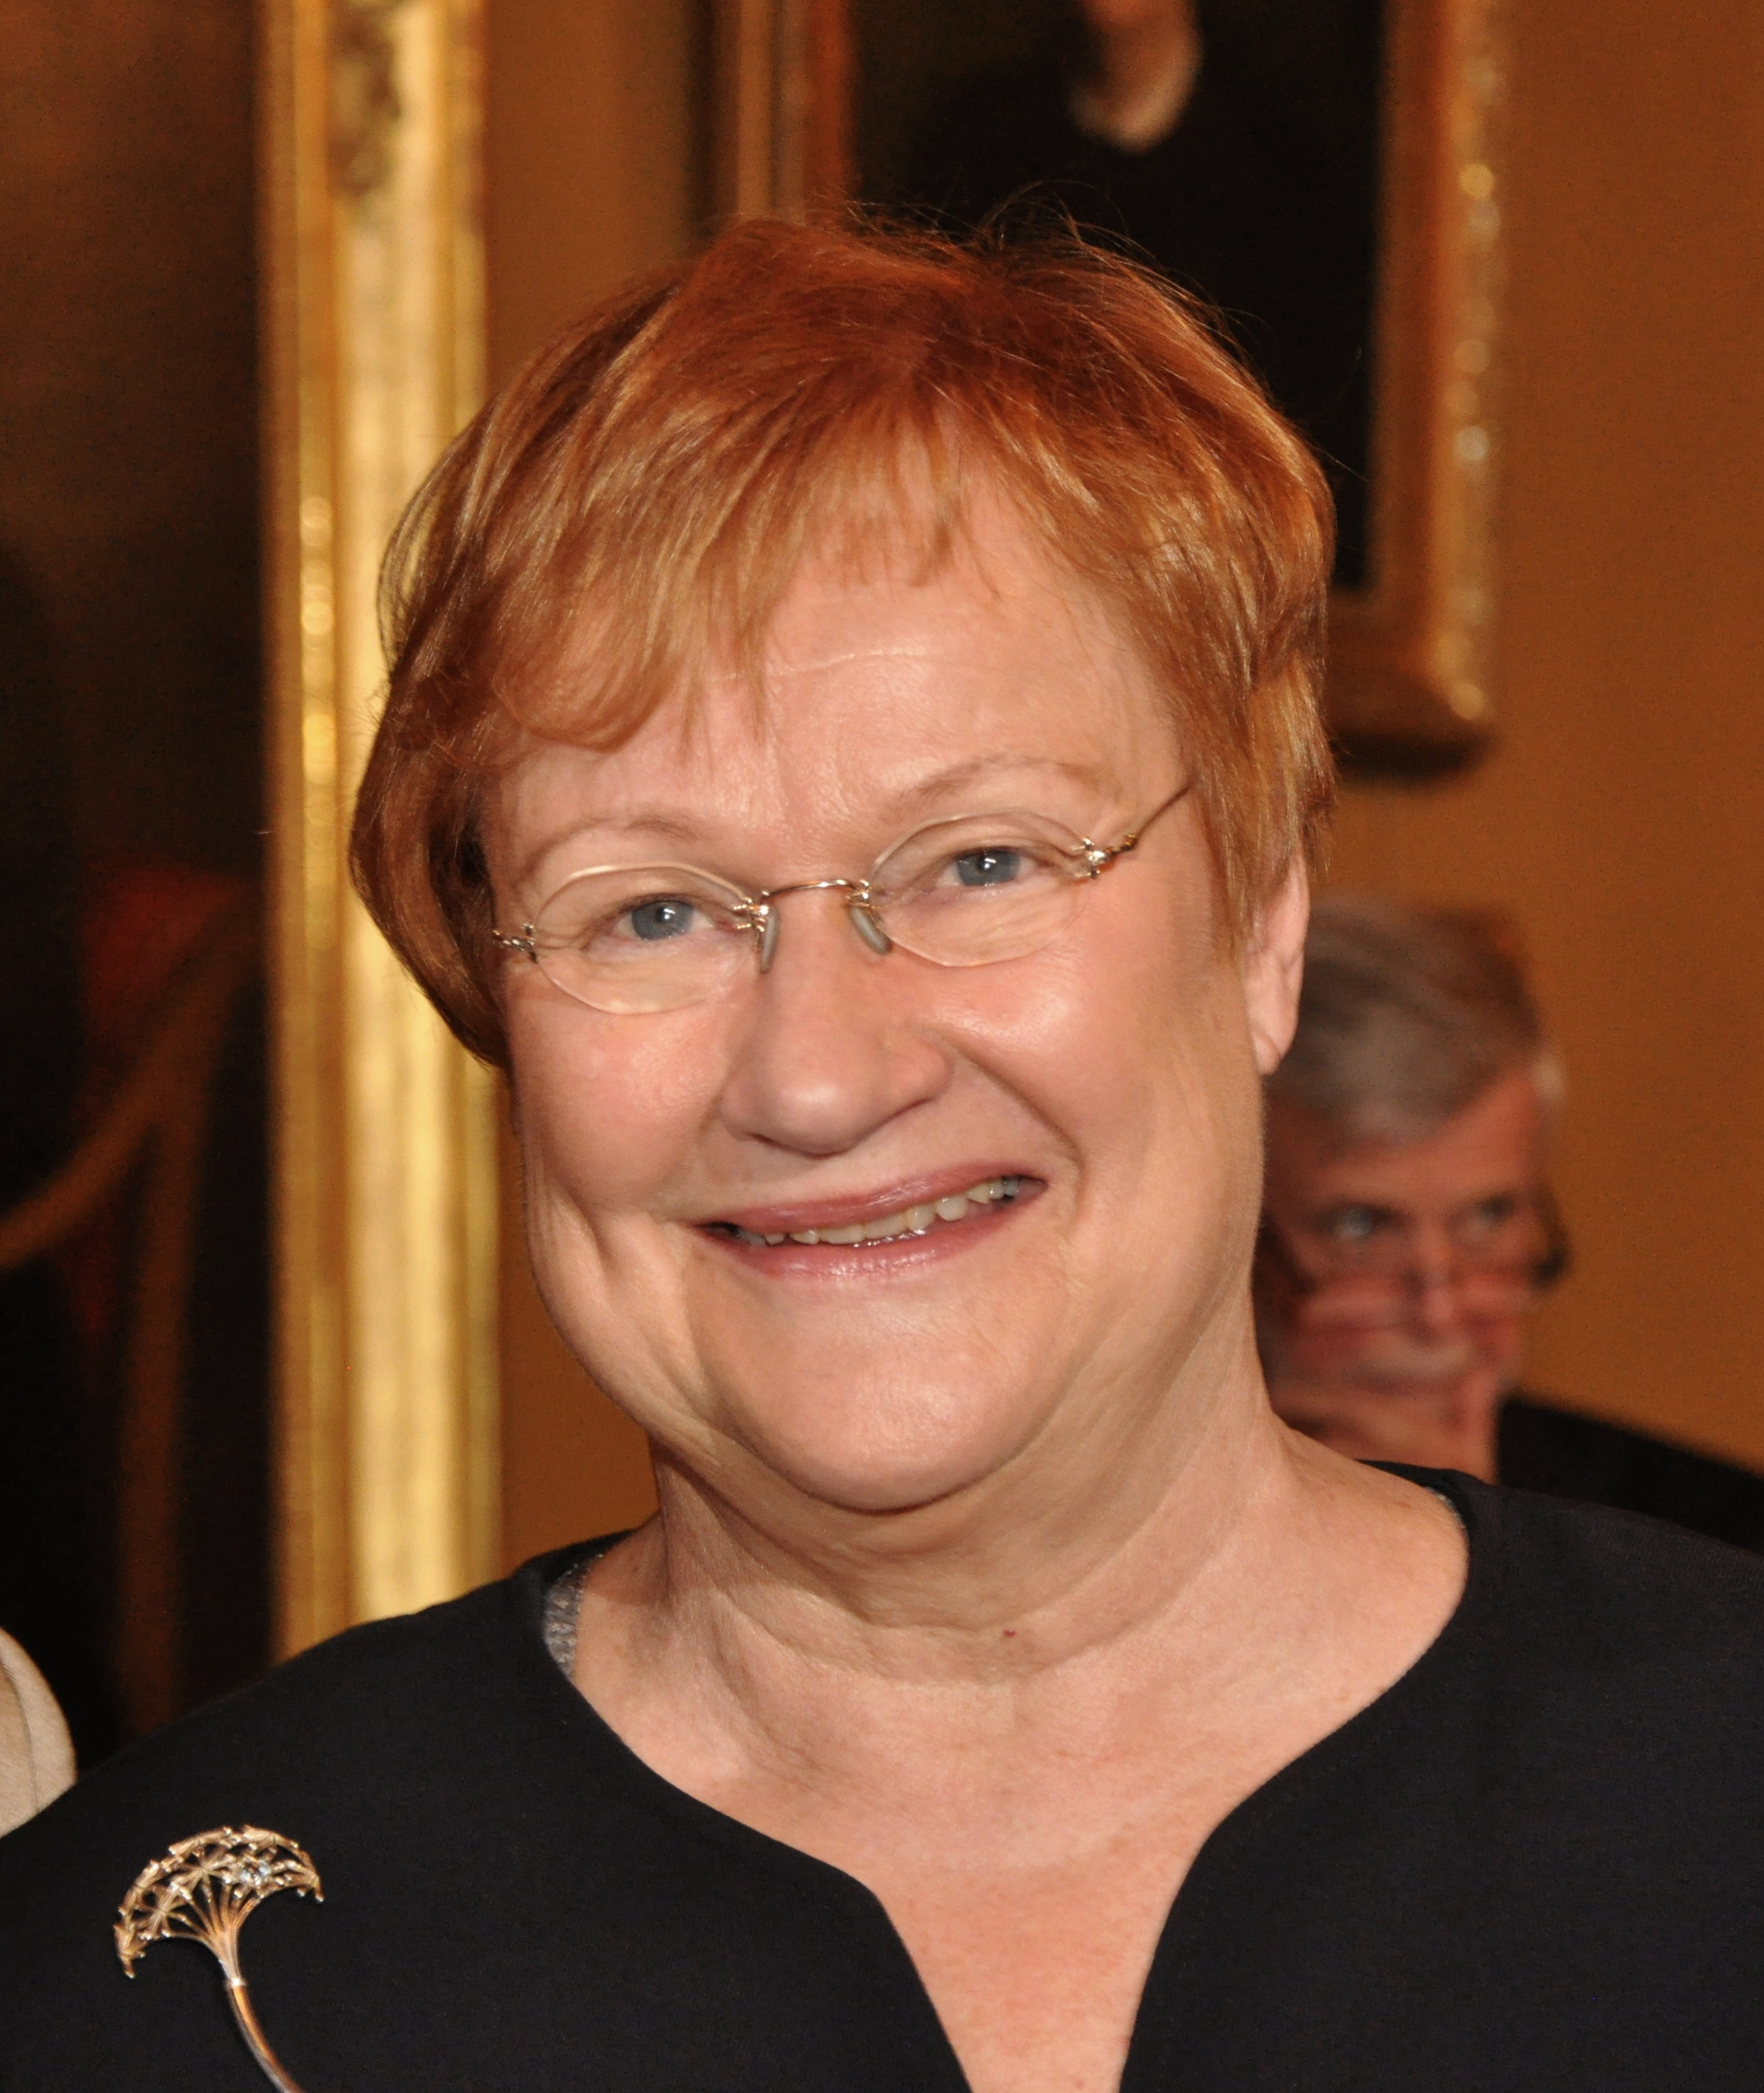 https://upload.wikimedia.org/wikipedia/commons/b/bc/Tarja_Halonen_1c389_8827-2.jpg